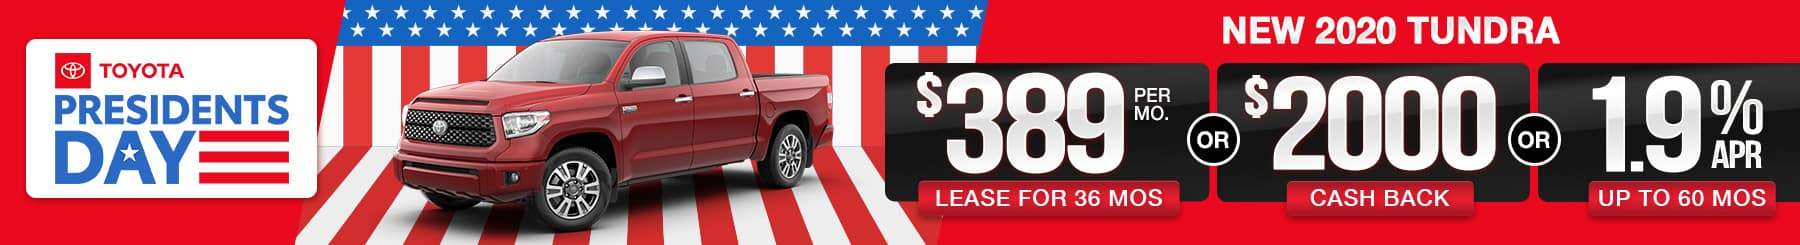 2020 Tundra Lease or Finance Offers